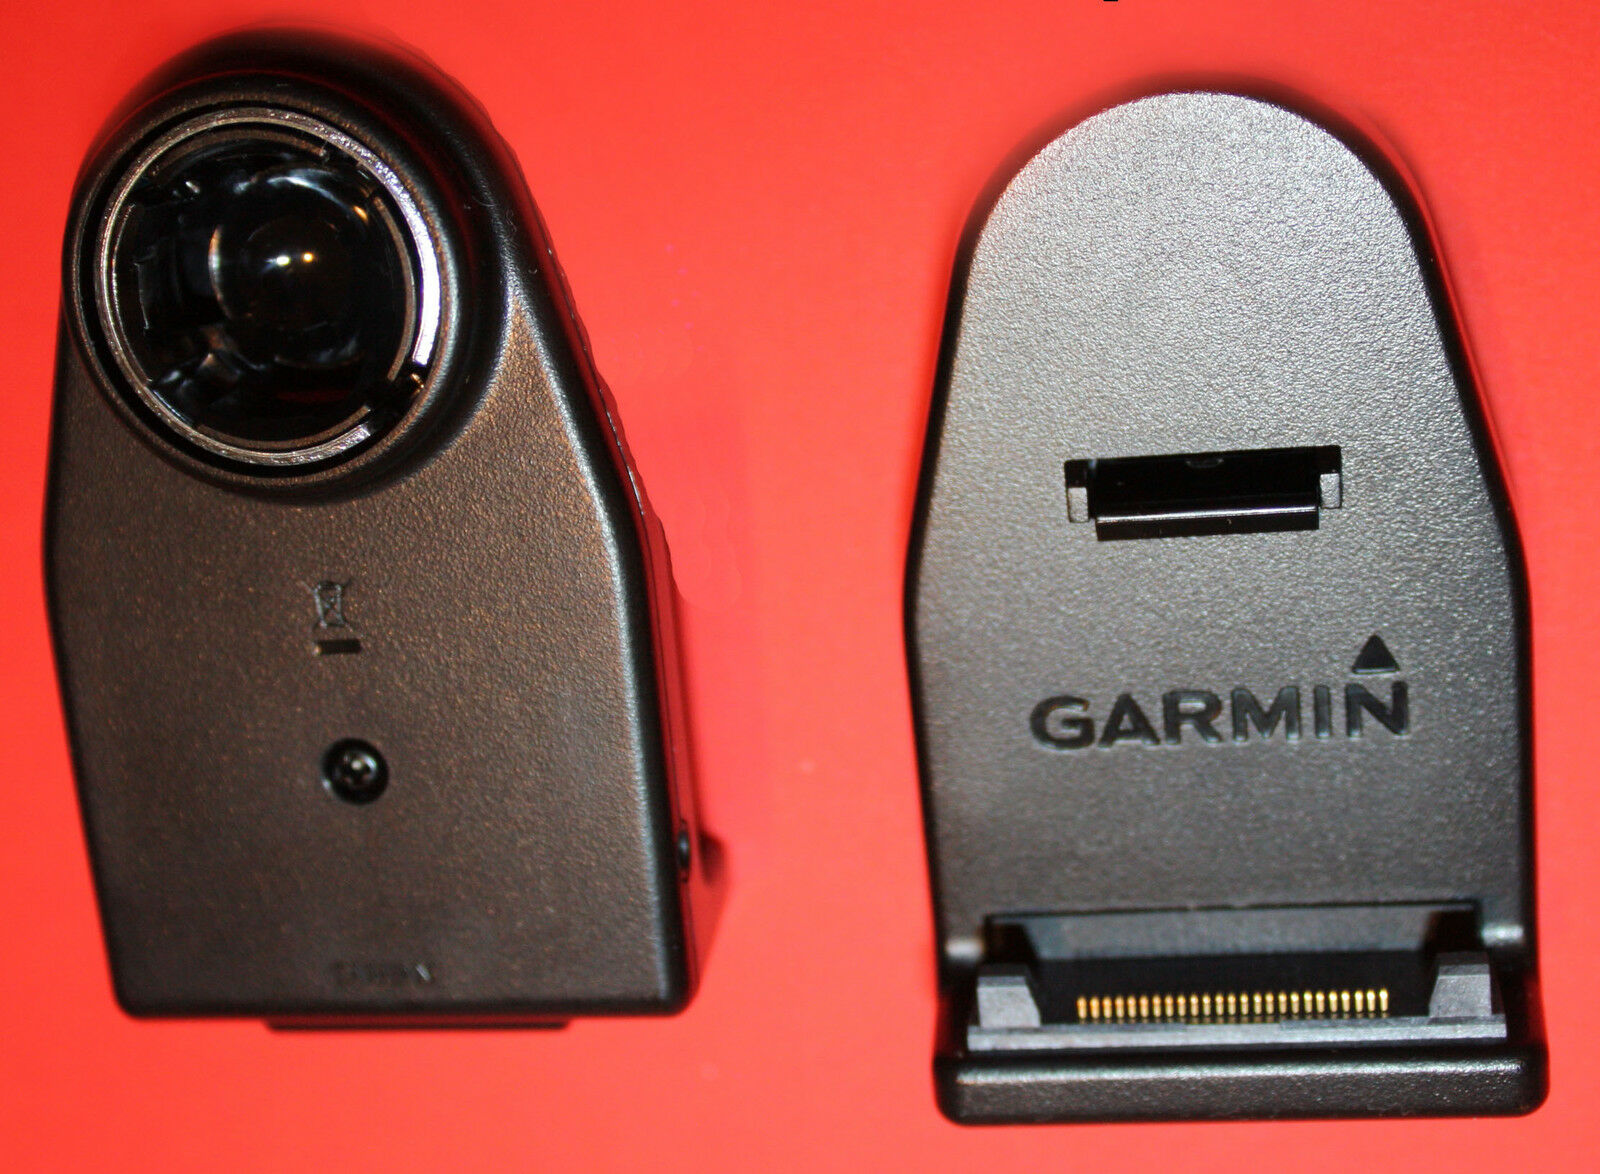 Garmin Nuvi Mount/clip/ 760 765t 700, 710, 785t Gps Holder Adapter